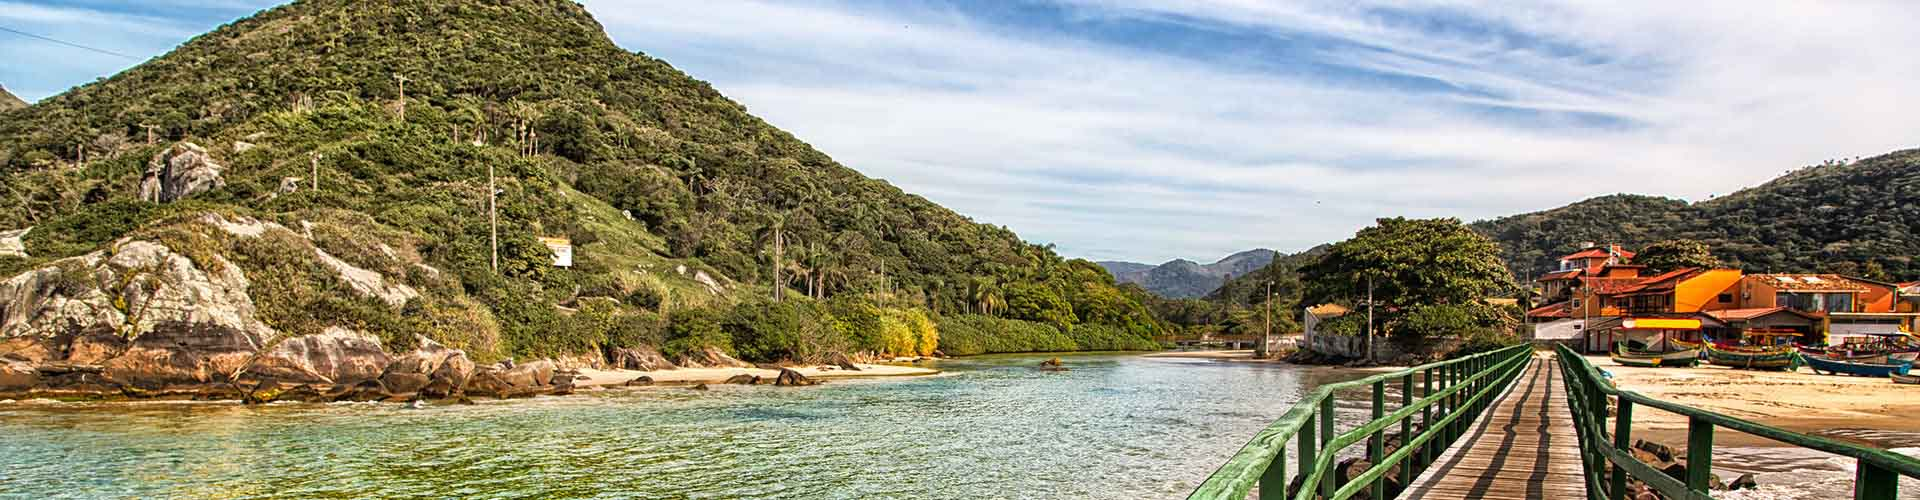 Florianopolis – Camping in Florianopolis. Maps of Florianopolis, Photos and Reviews for each camping in Florianopolis.